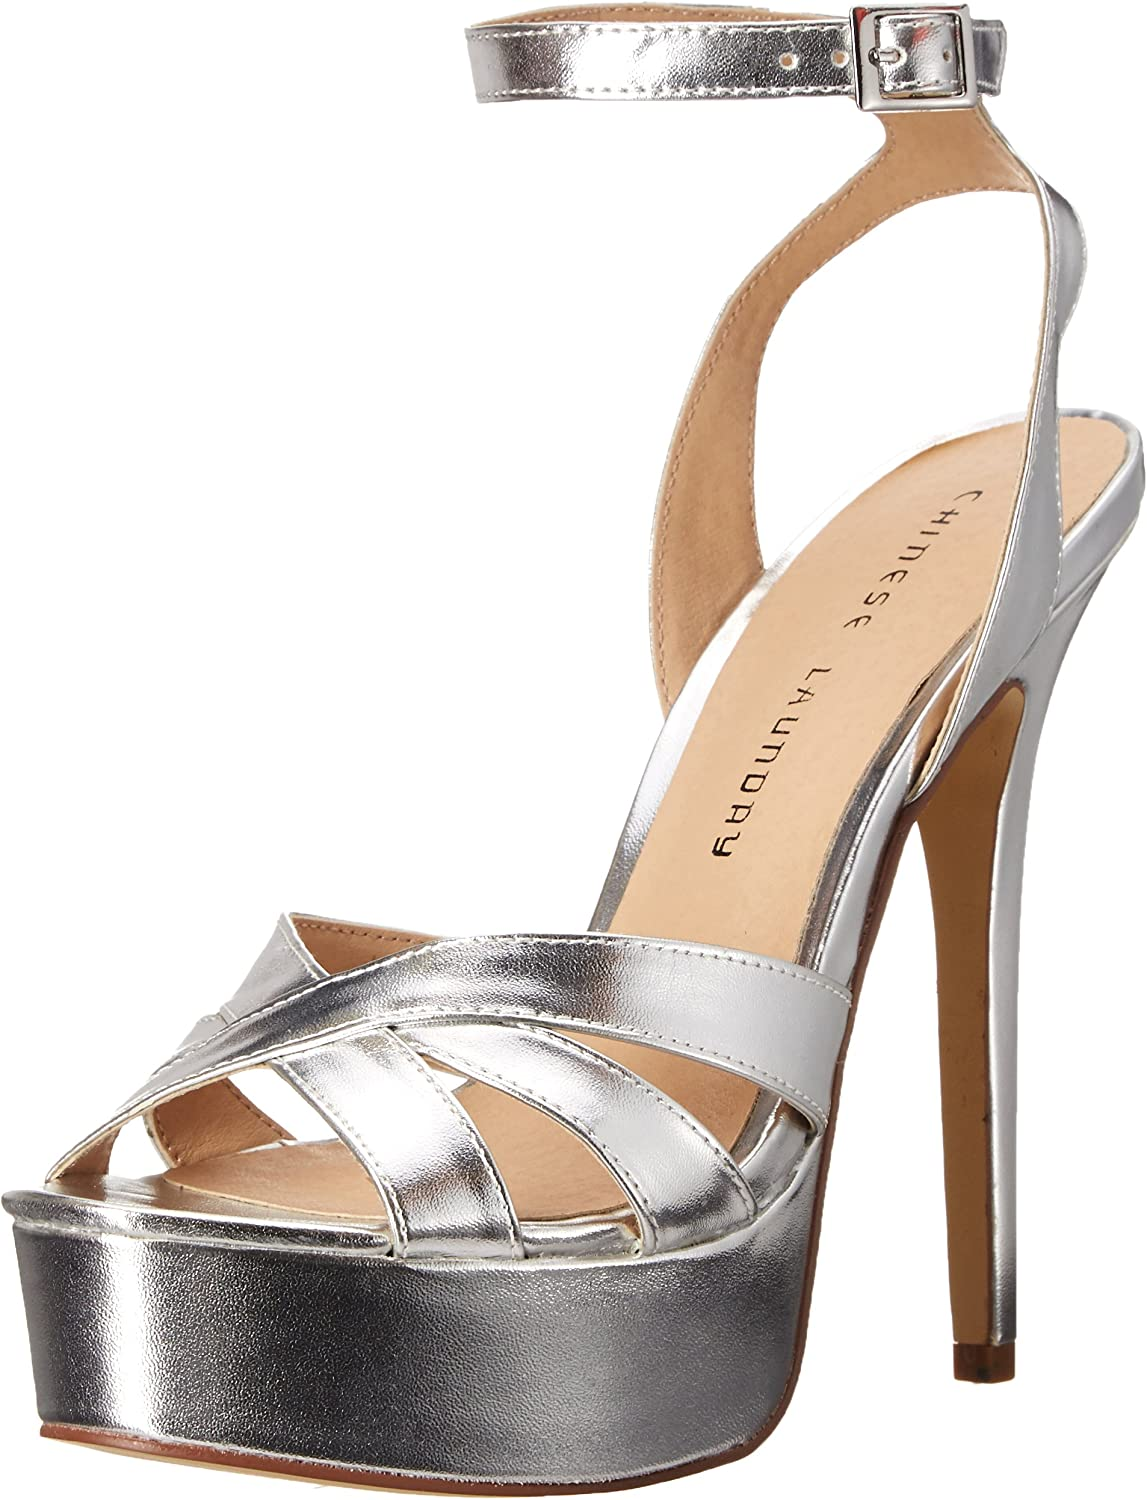 Chinese Laundry Women's Alyssa Platform Dress Sandal